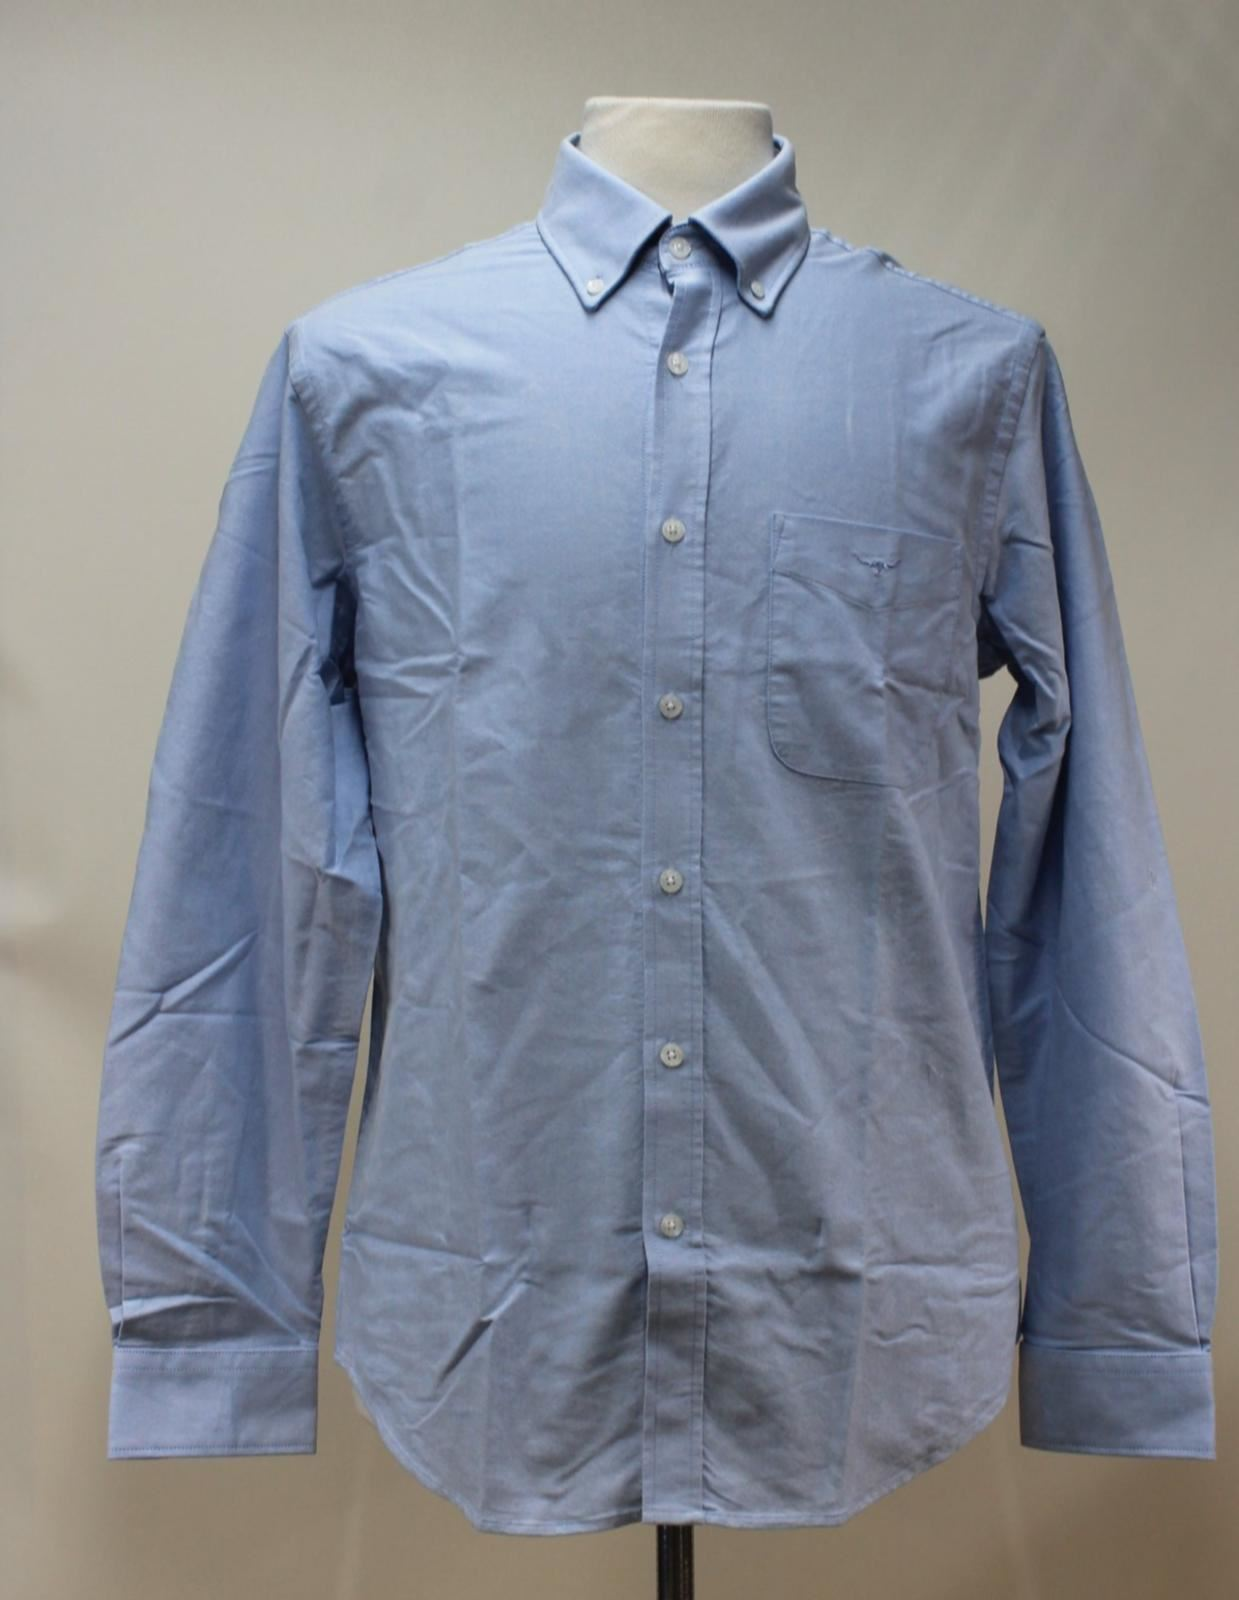 BNWT R. M. WILLIAMS Men's Sky bluee Cotton Collared Collins Casual Shirt Size XXL